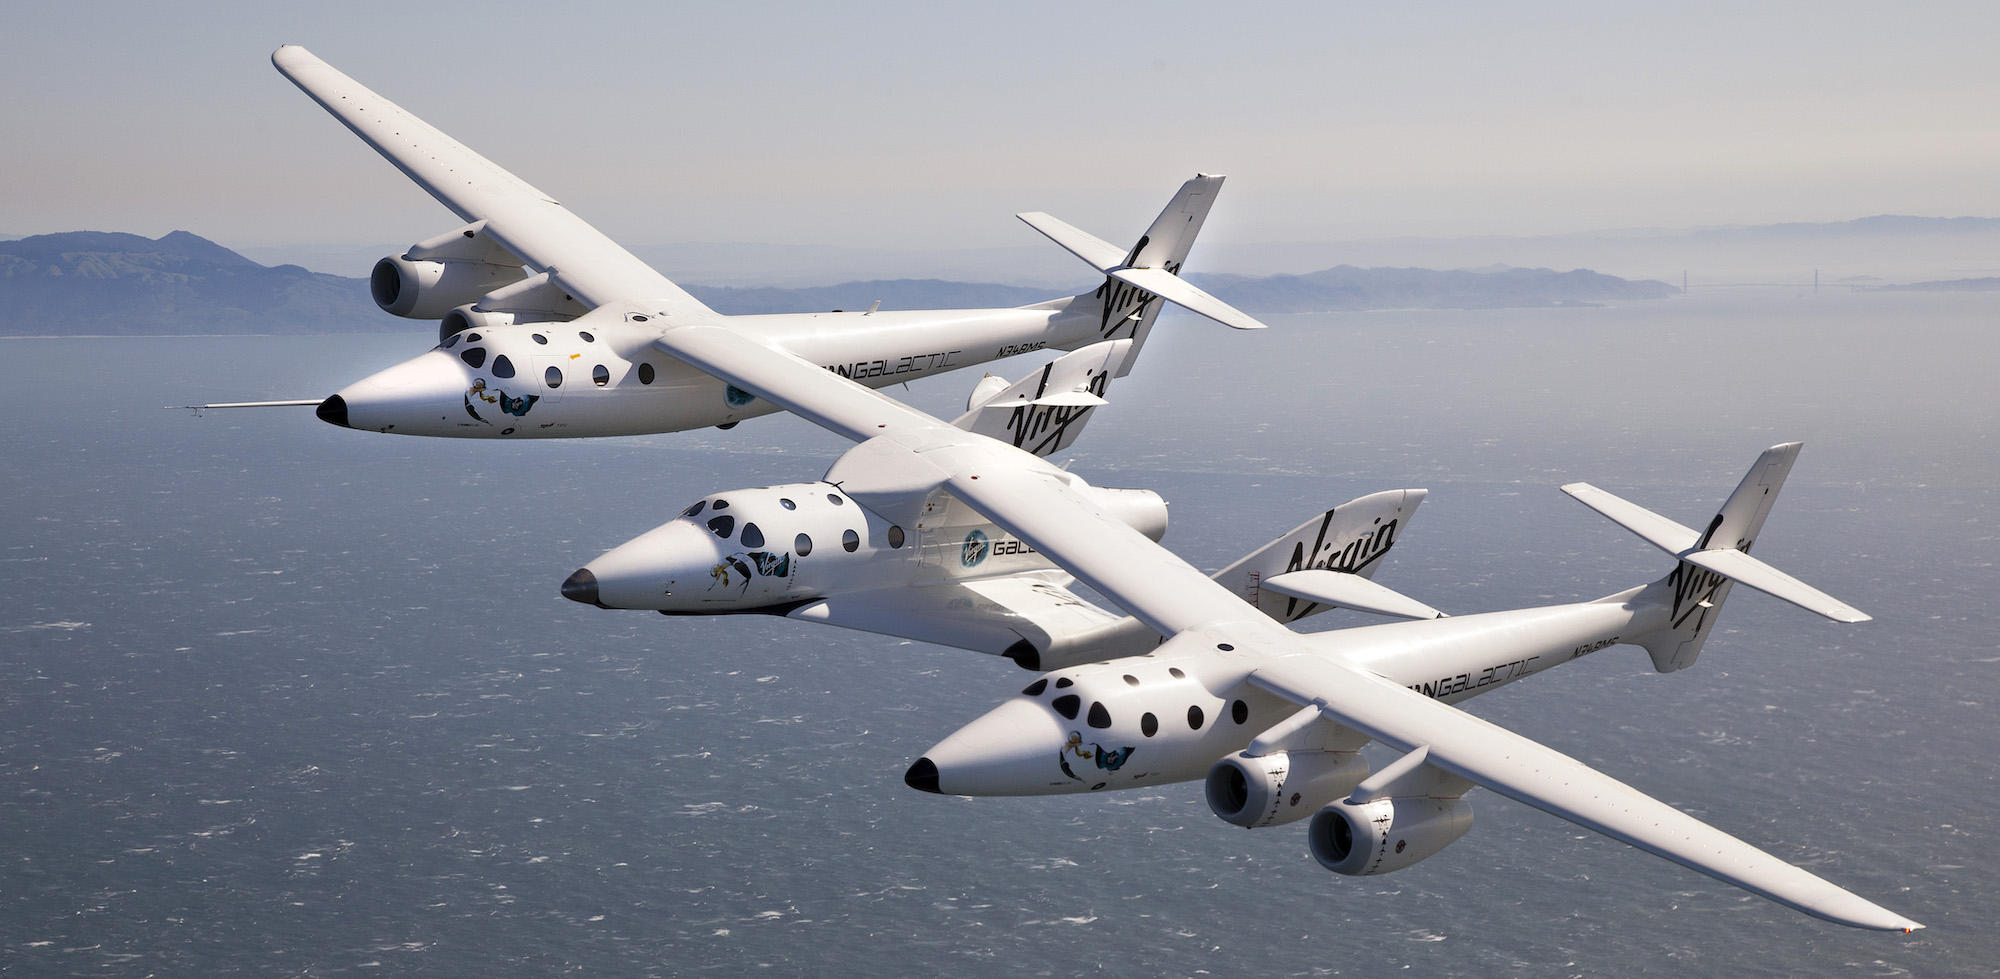 VMS WhiteKnight the carrier aircraft of SpaceShipTwo, which transported the passengers including Richard Branson for the first suborbital tourist flight Credit: Virgin Galactic